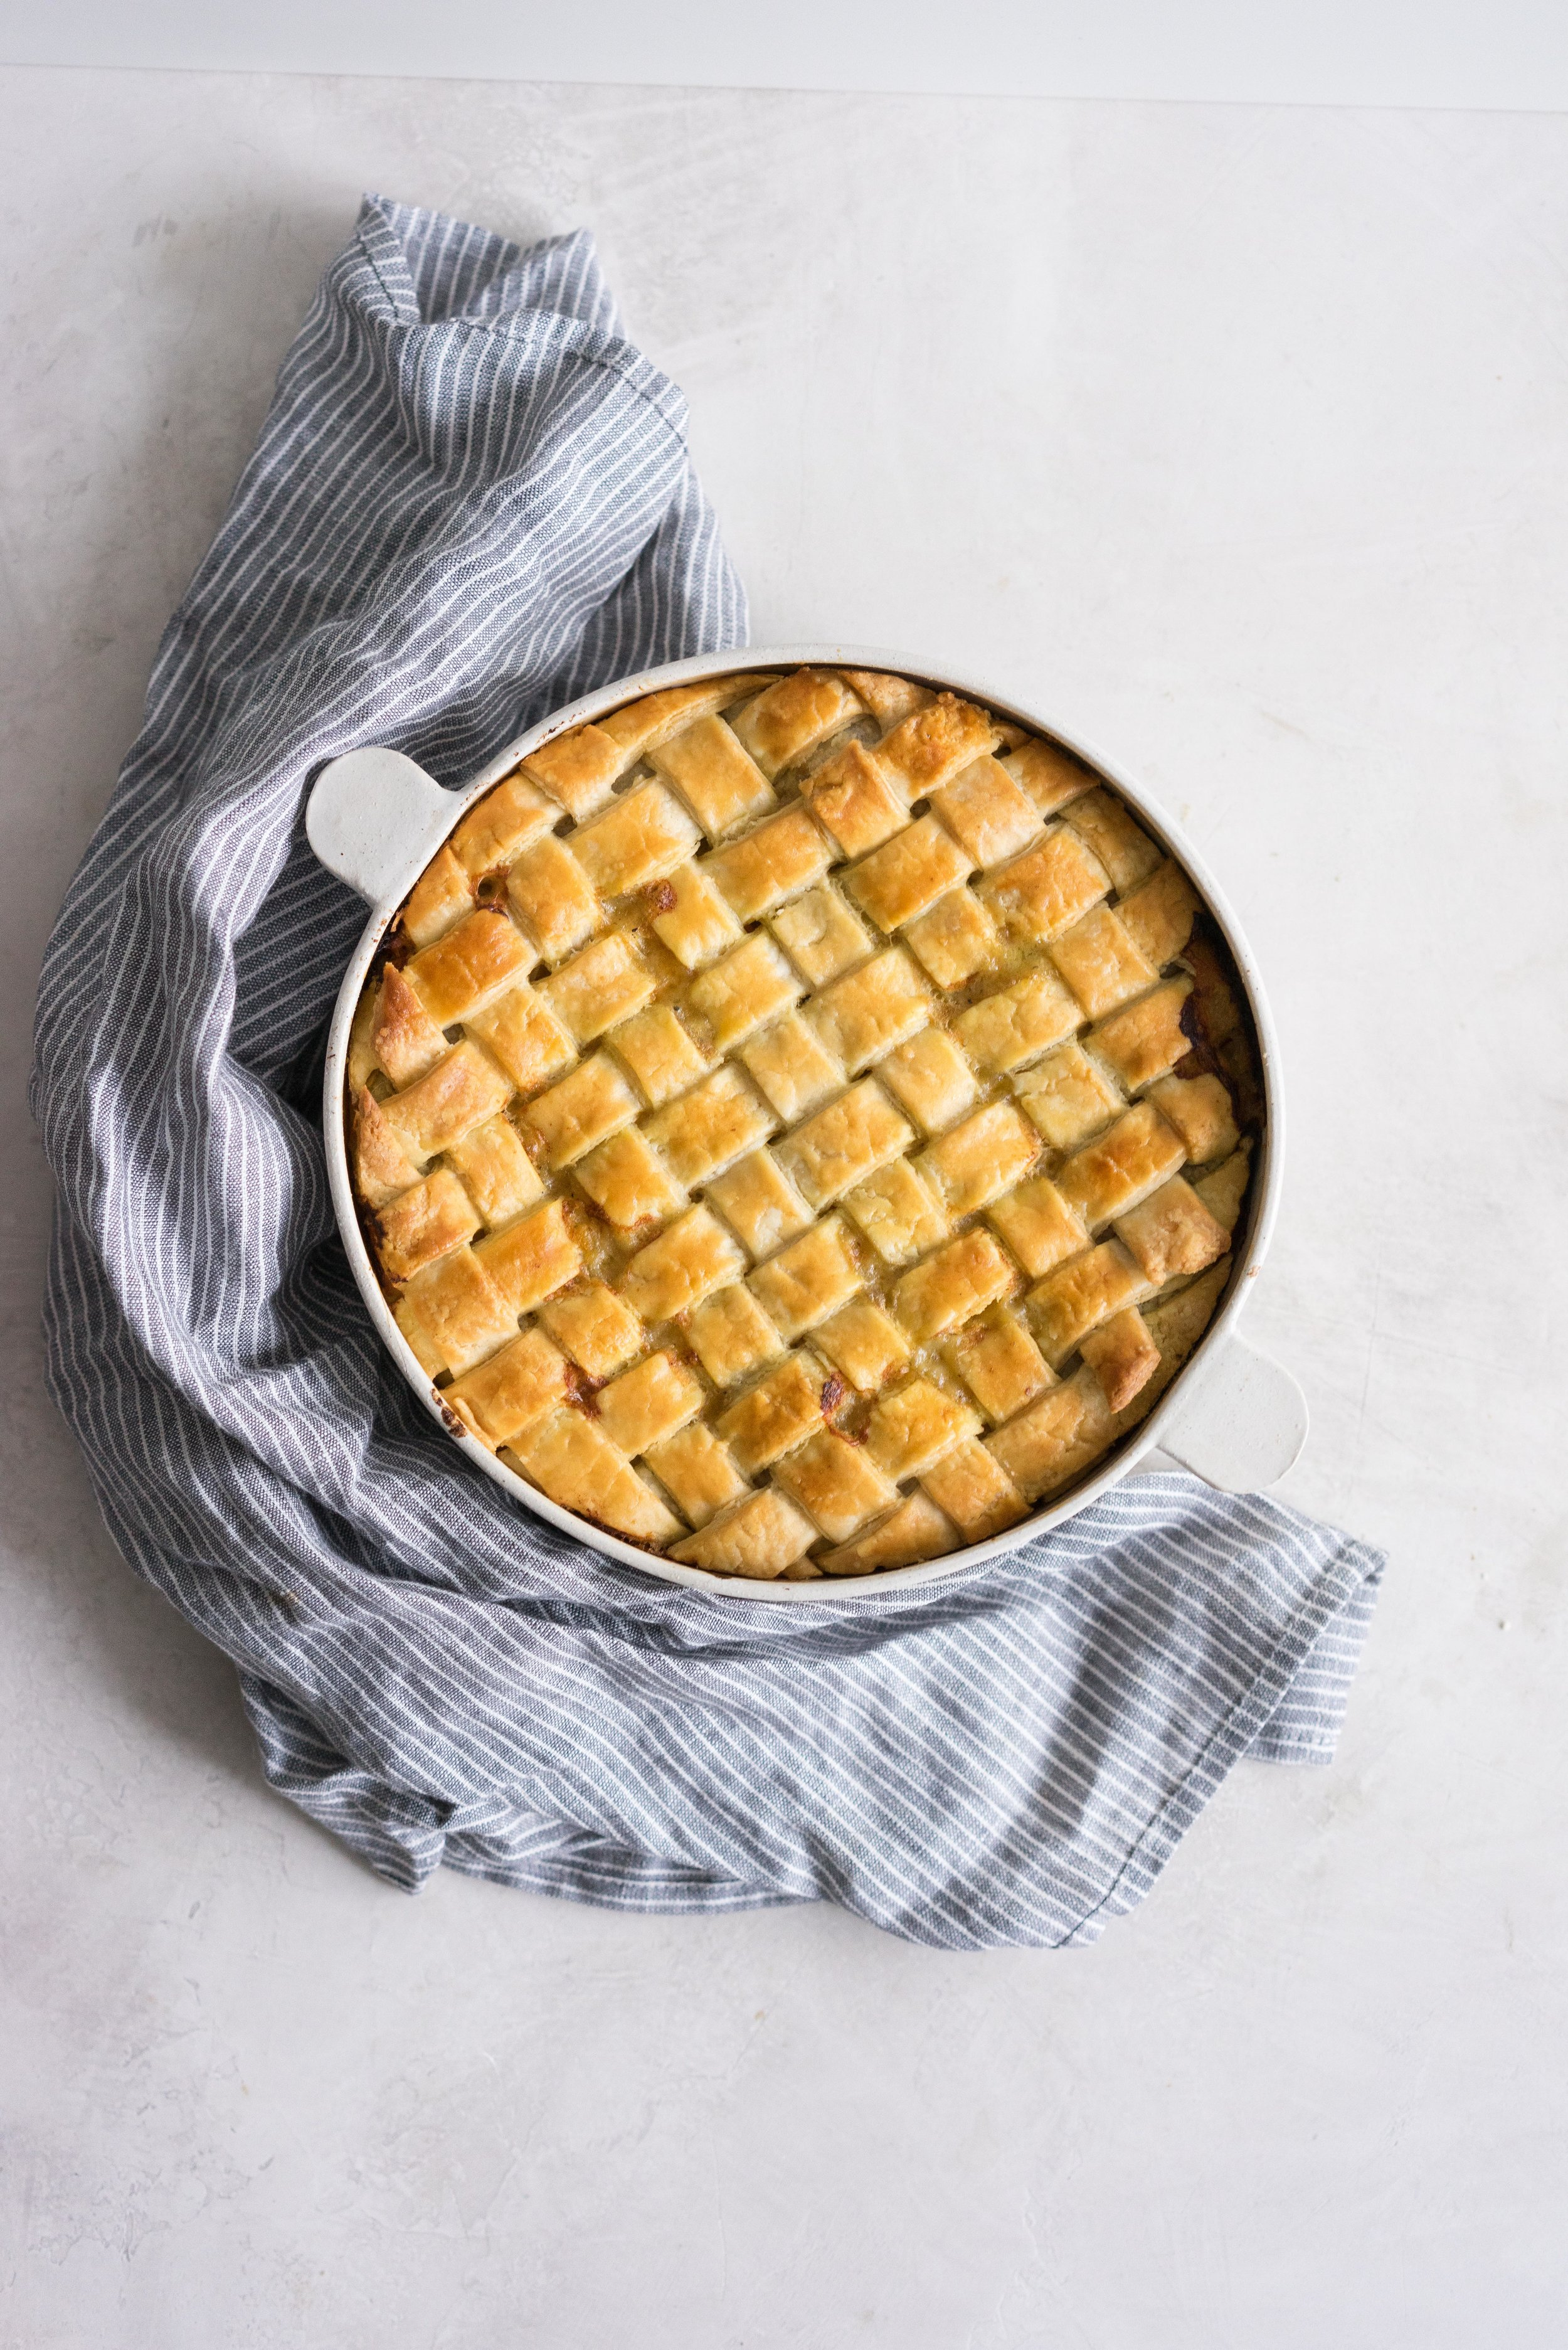 Chicken Pot Pie - a rich and flavoursome chicken, bacon, and vegetable mixture is topped with a flaky tender crust, and baked until deeply golden. The perfect winter comfort food